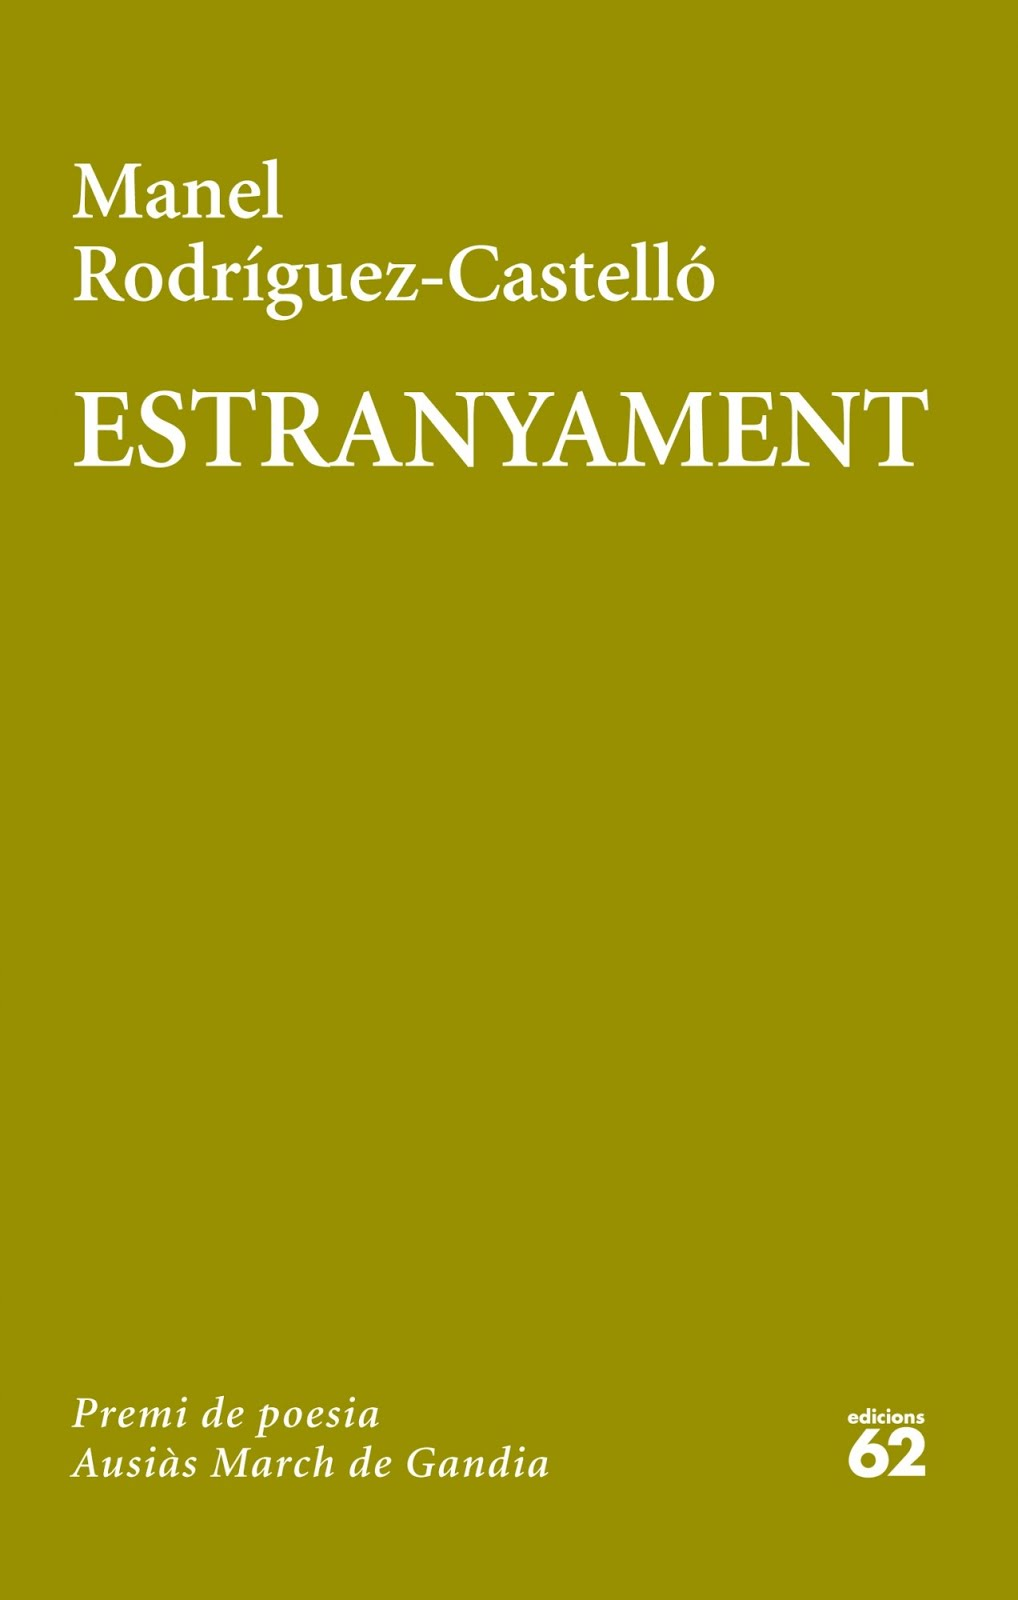 ESTRANYAMENT